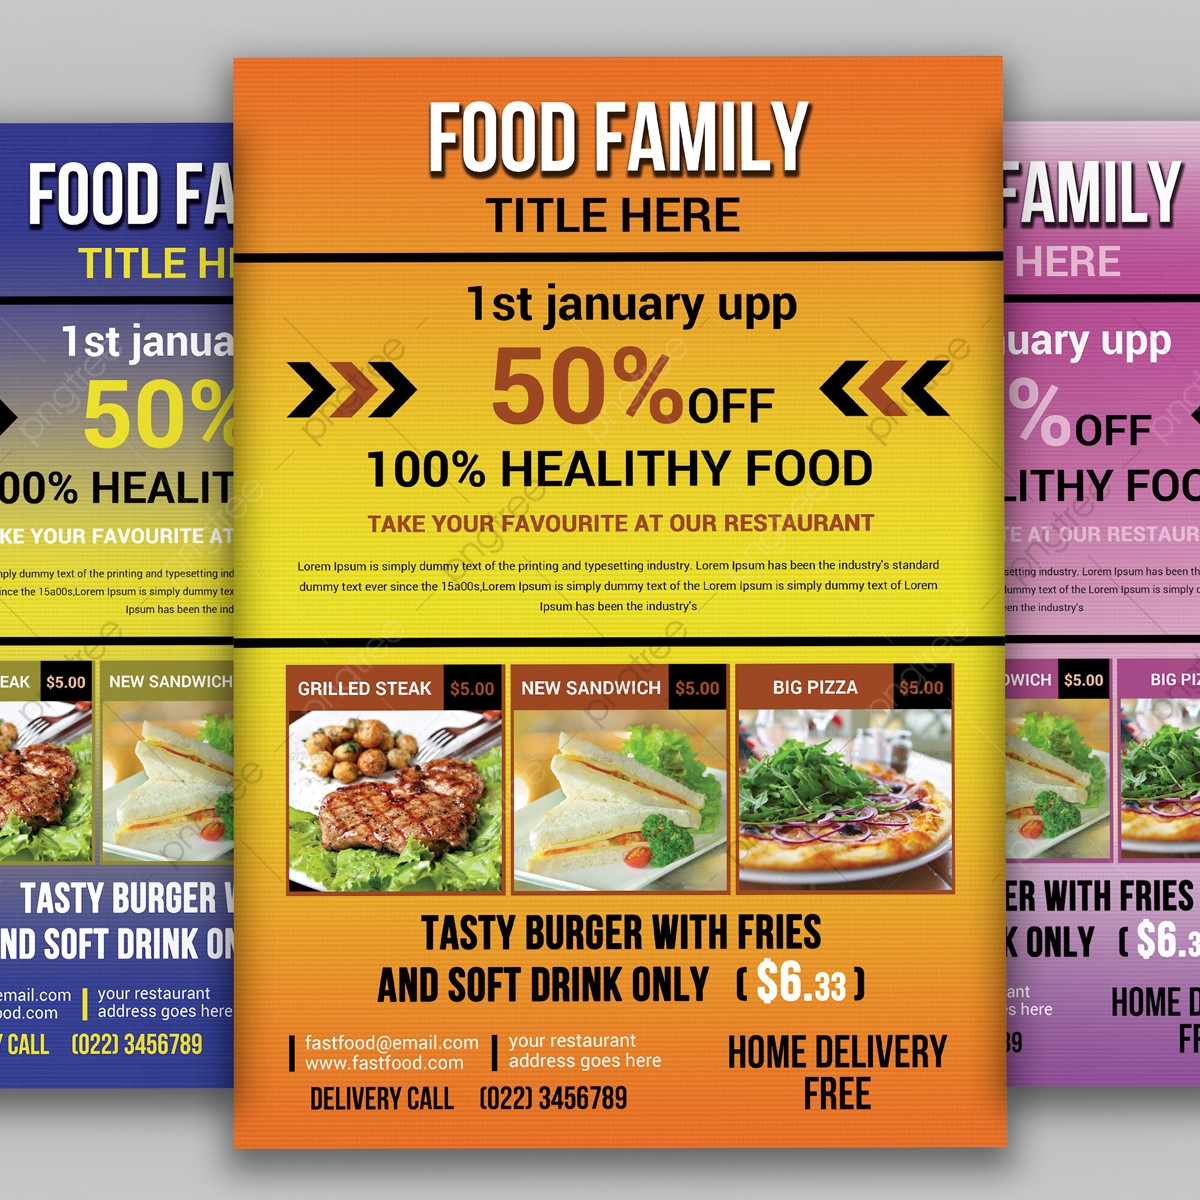 Food Flyer Template, Business, Delicious Menu, Fast Food PNG